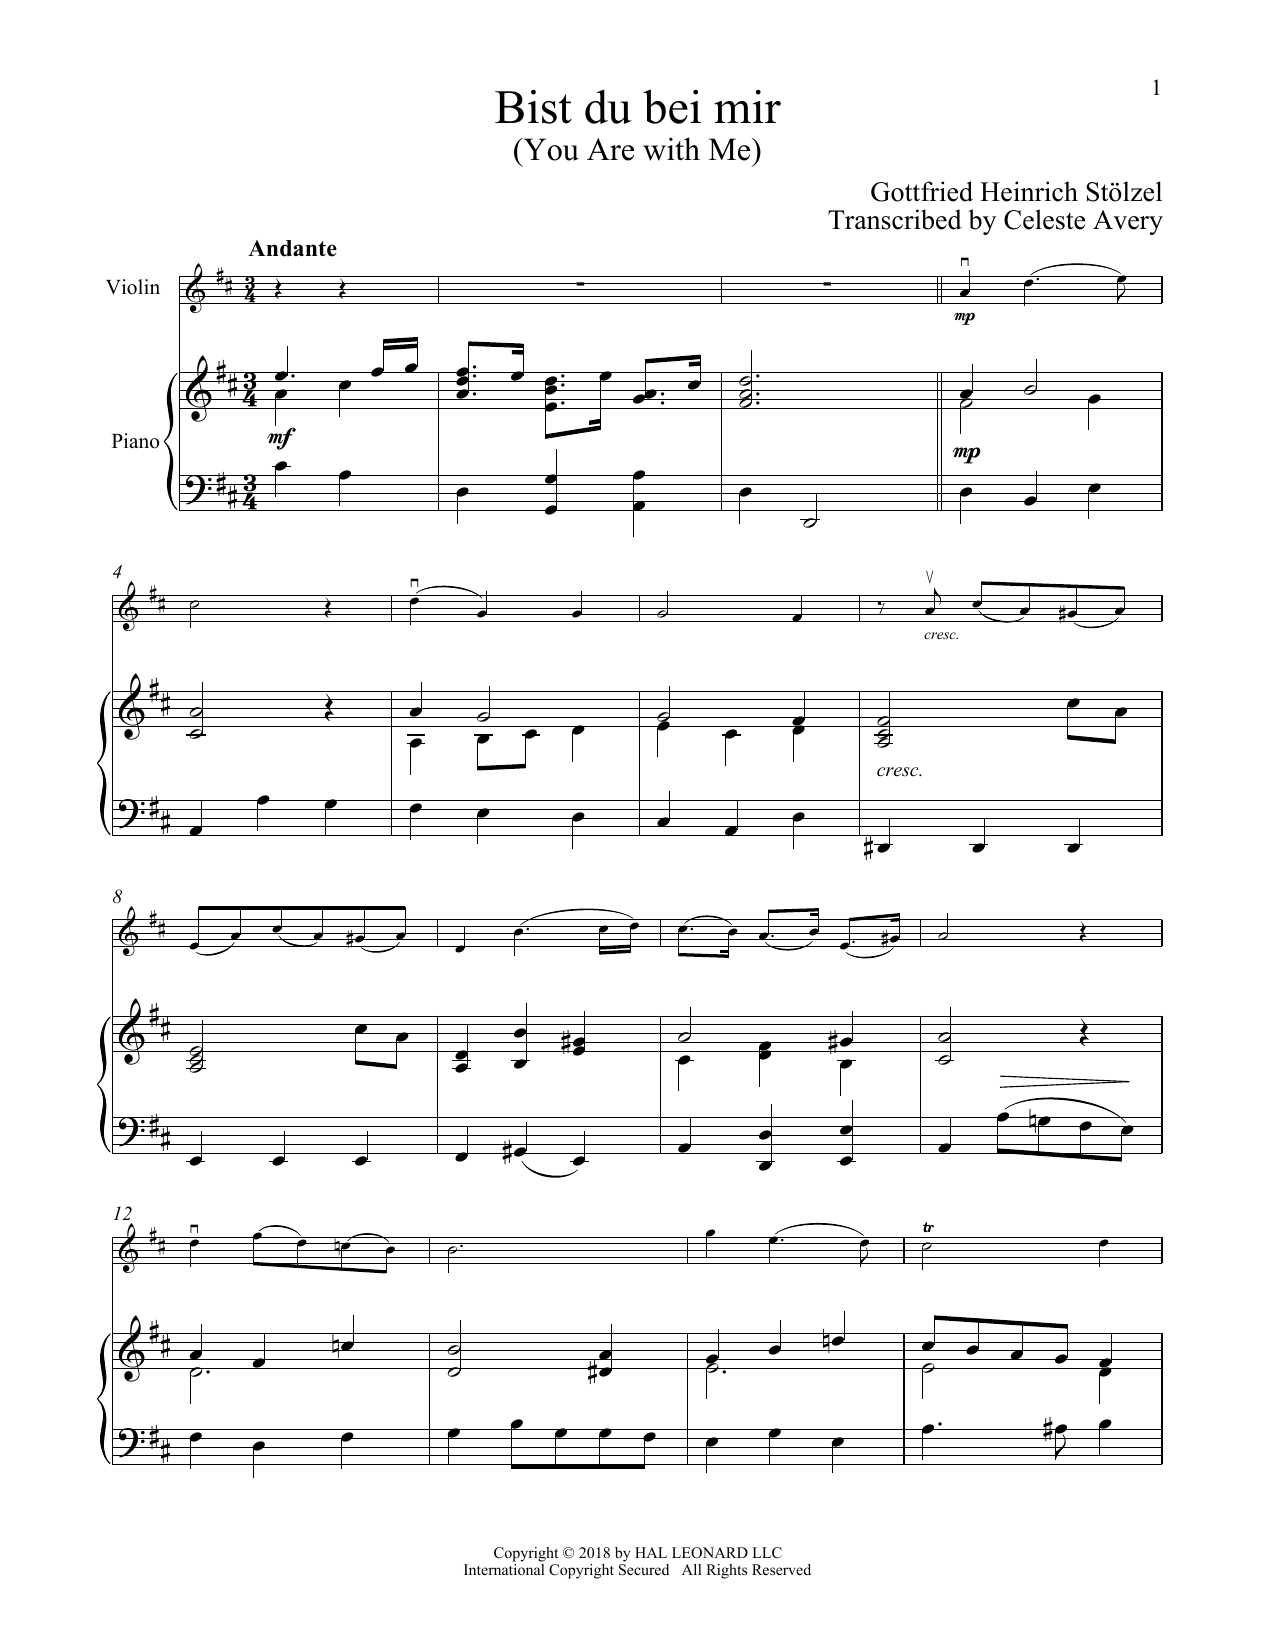 Johann Sebastian Bach 'Bist du bei mir (You Are With Me)' Sheet Music  Notes, Chords | Download Printable Violin and Piano - SKU: 407668